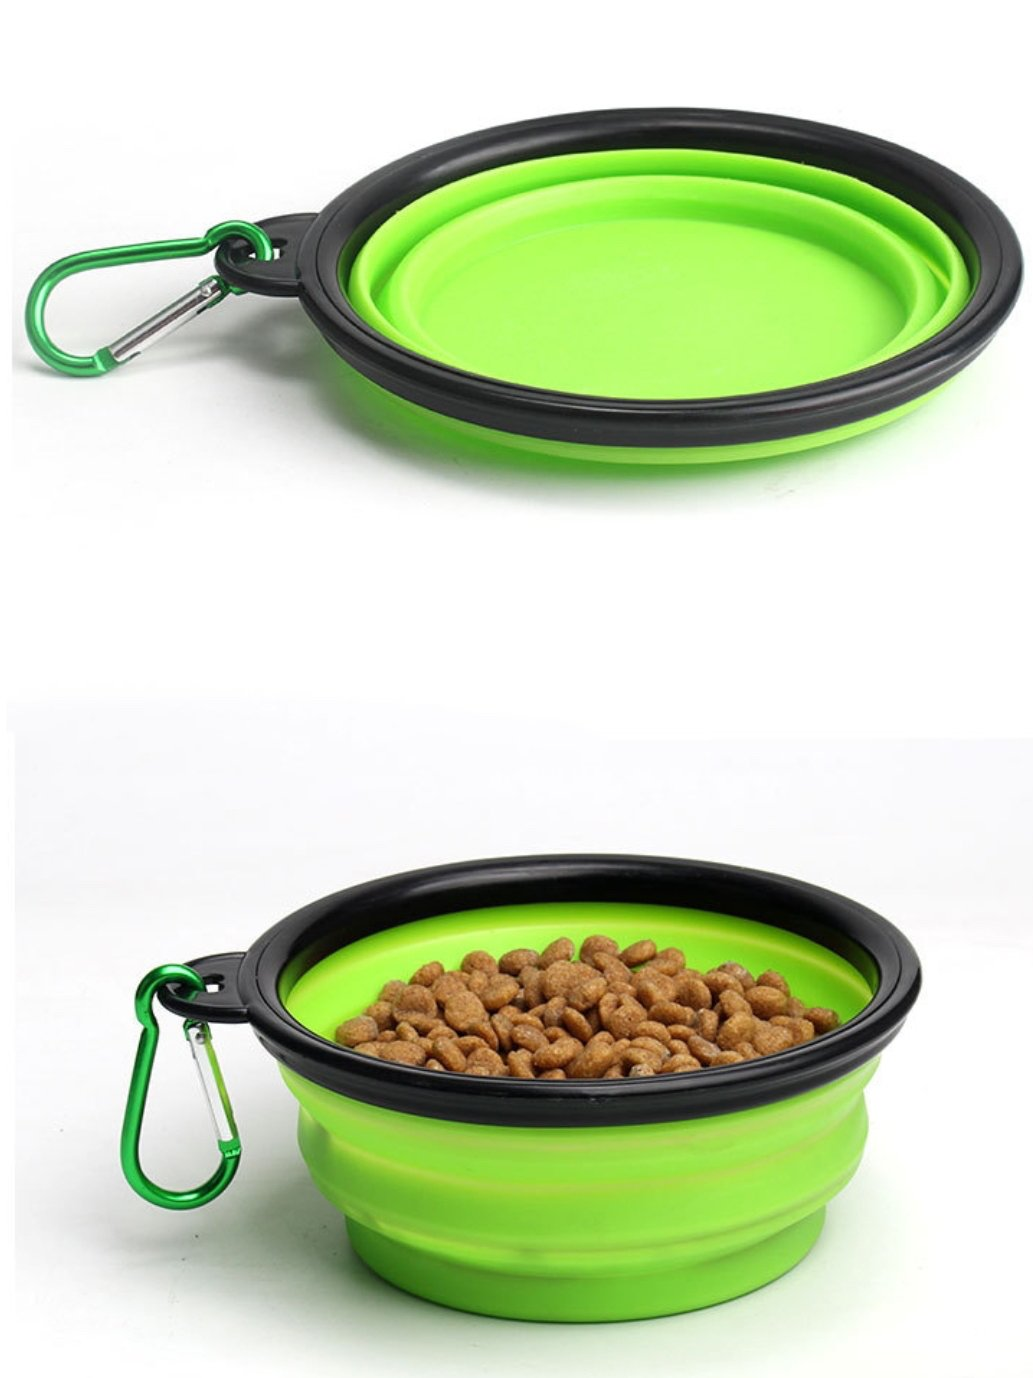 Collapsible Foldable Travel Dog Bowl for Feed and Water Pet Accessories - Set of 4